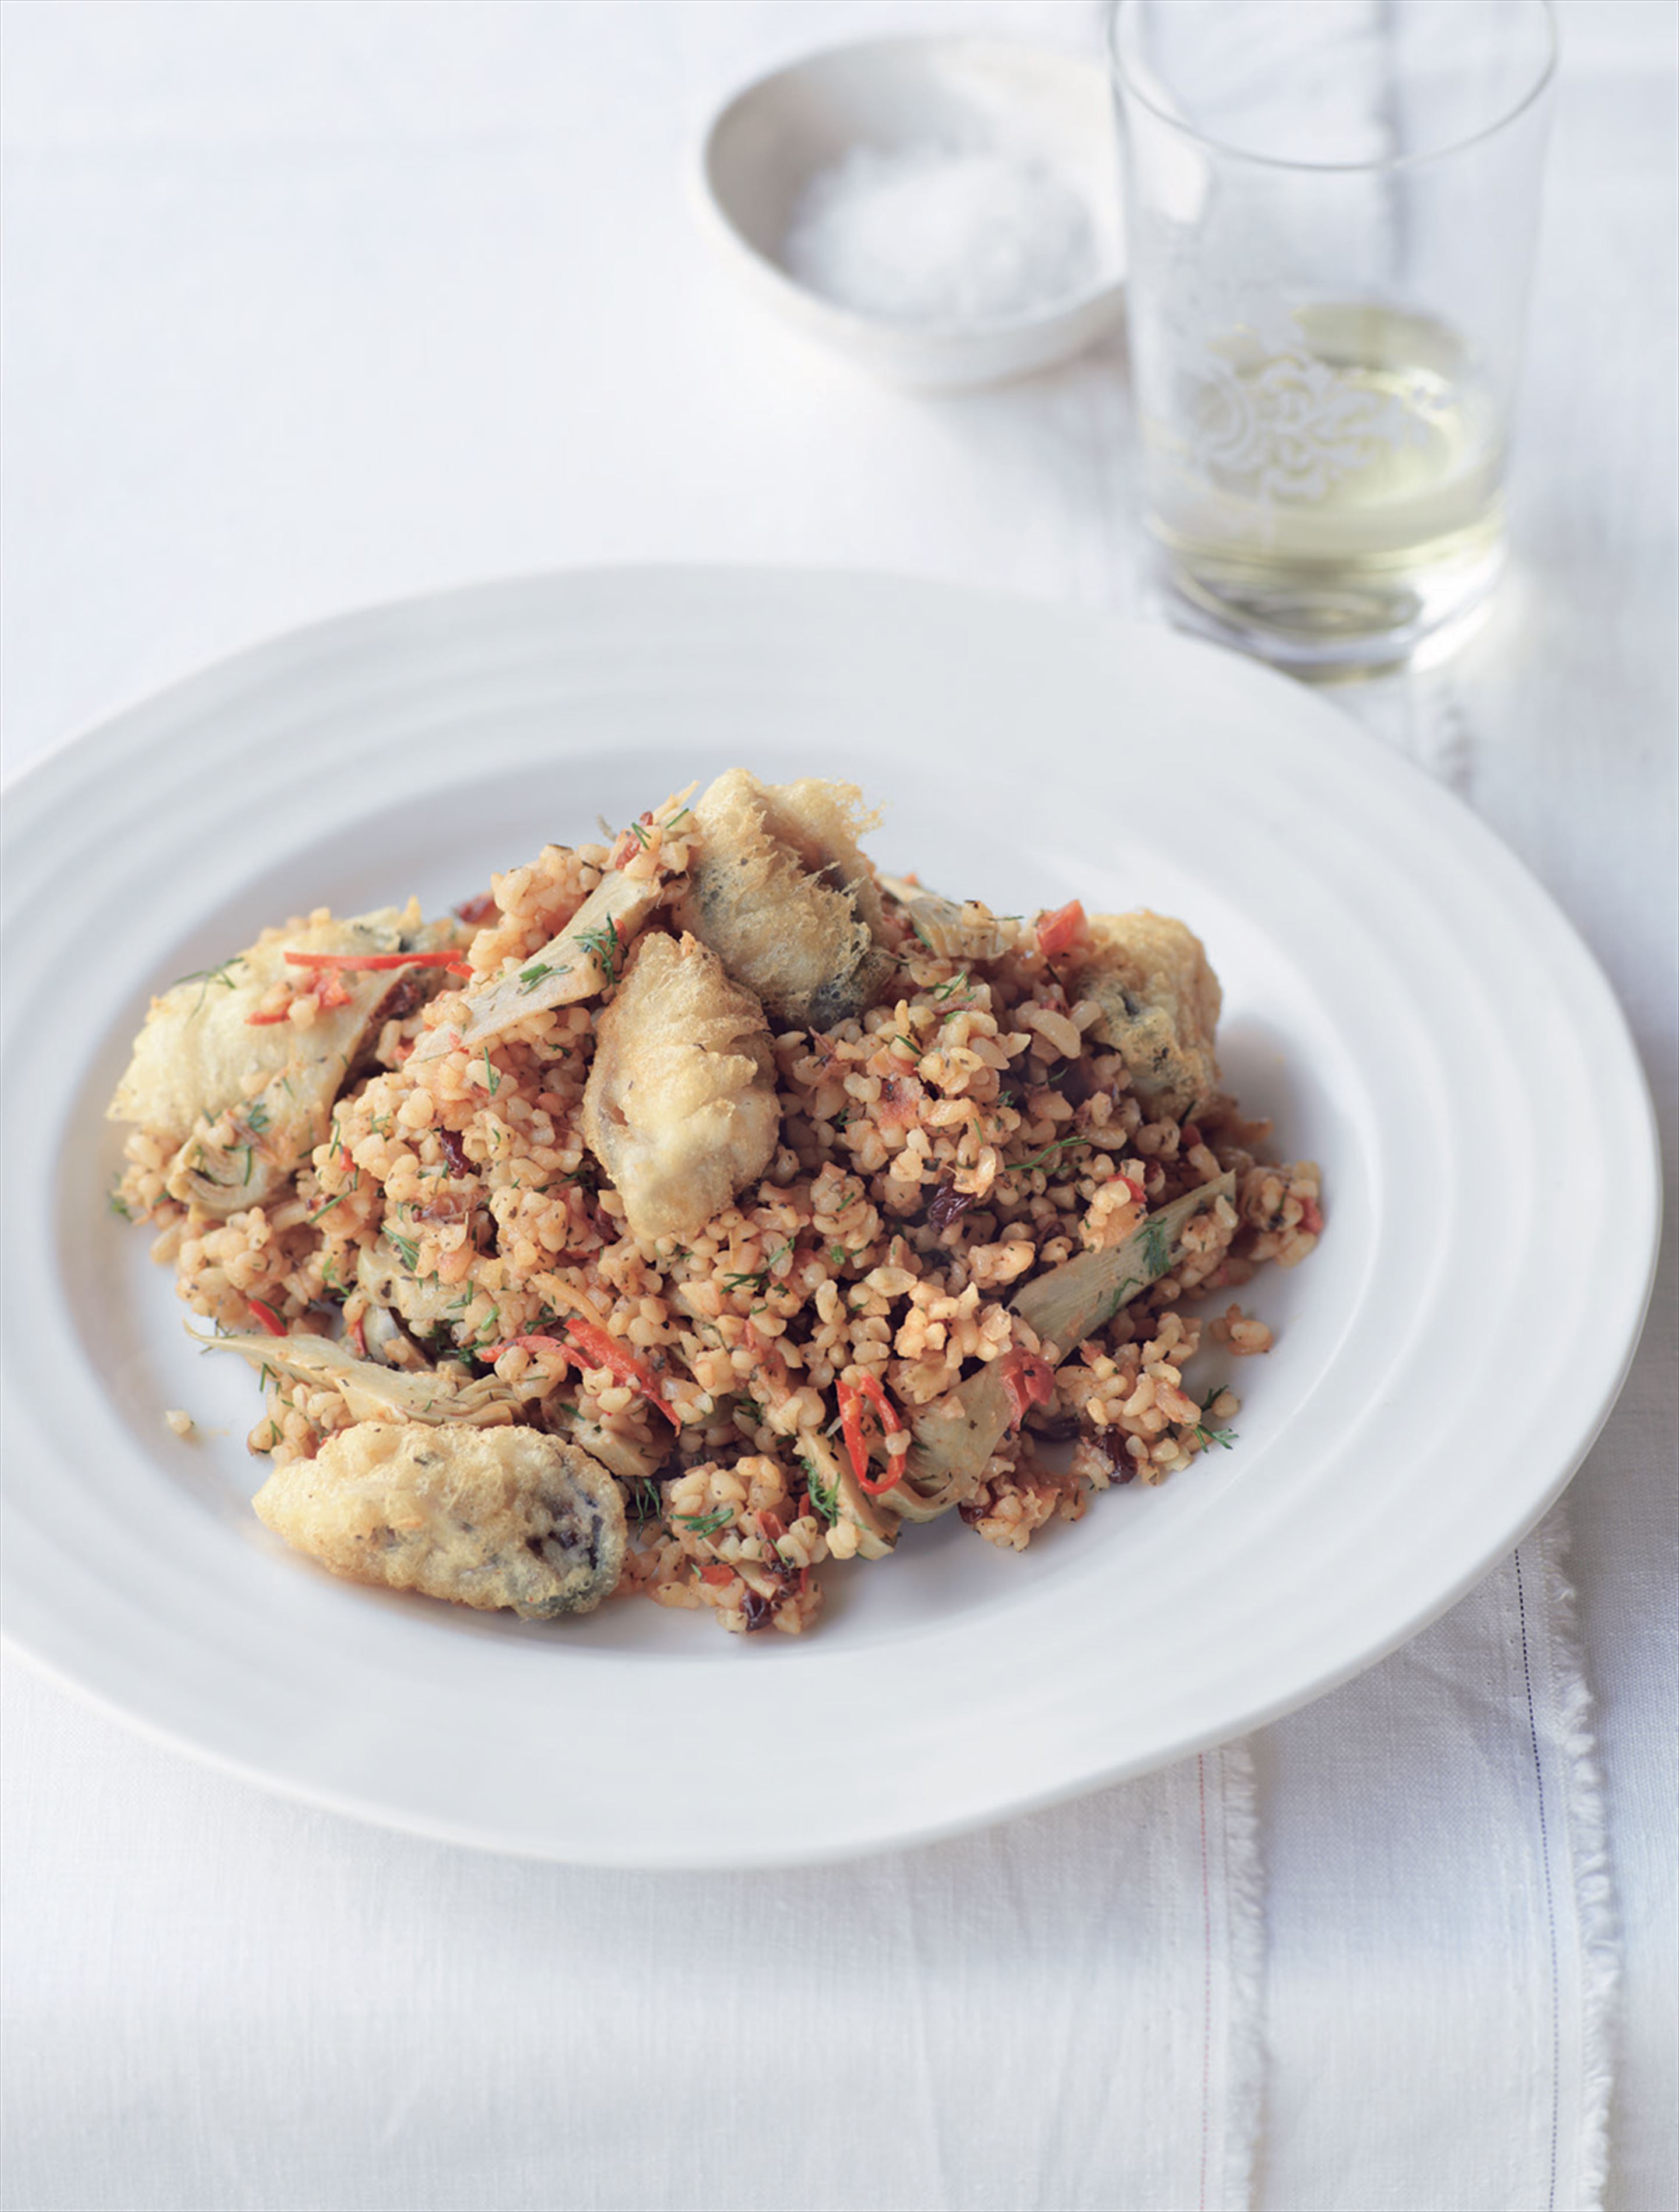 Artichoke and barberry bulgur pilav with fried mussels